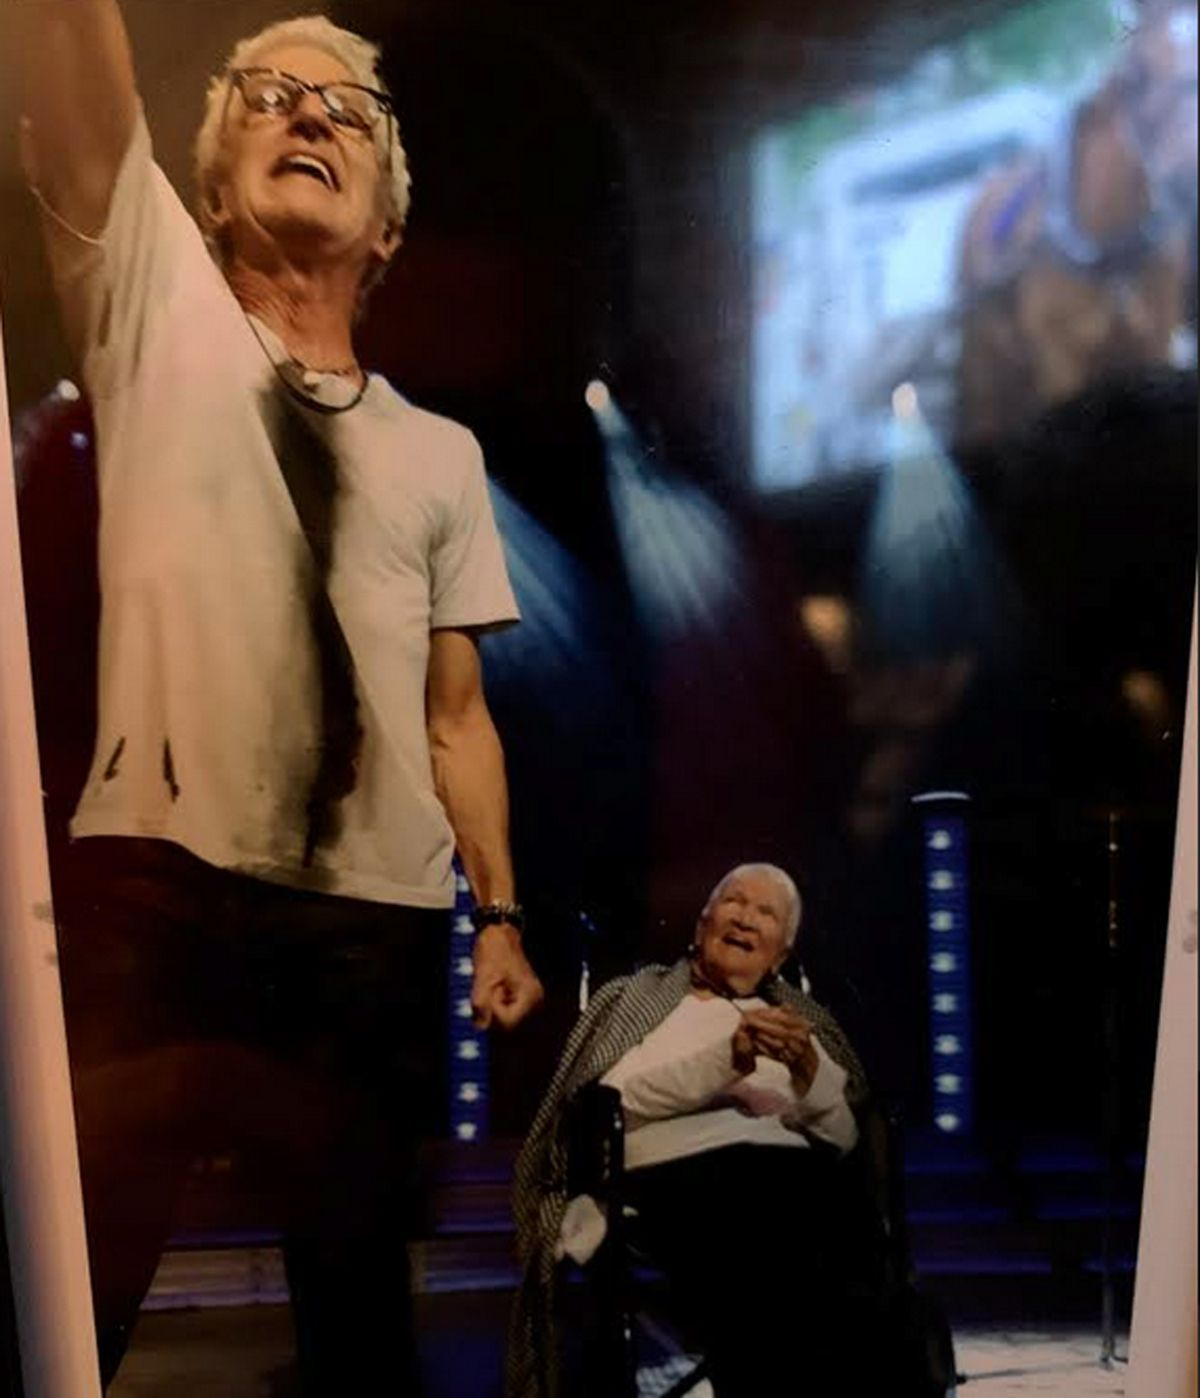 Mille Cronin looks on after her son Kevin Cronin brought her onstage during a 2016 REO Speedwagon show at the Star Plaza Theatre in Merrillville.